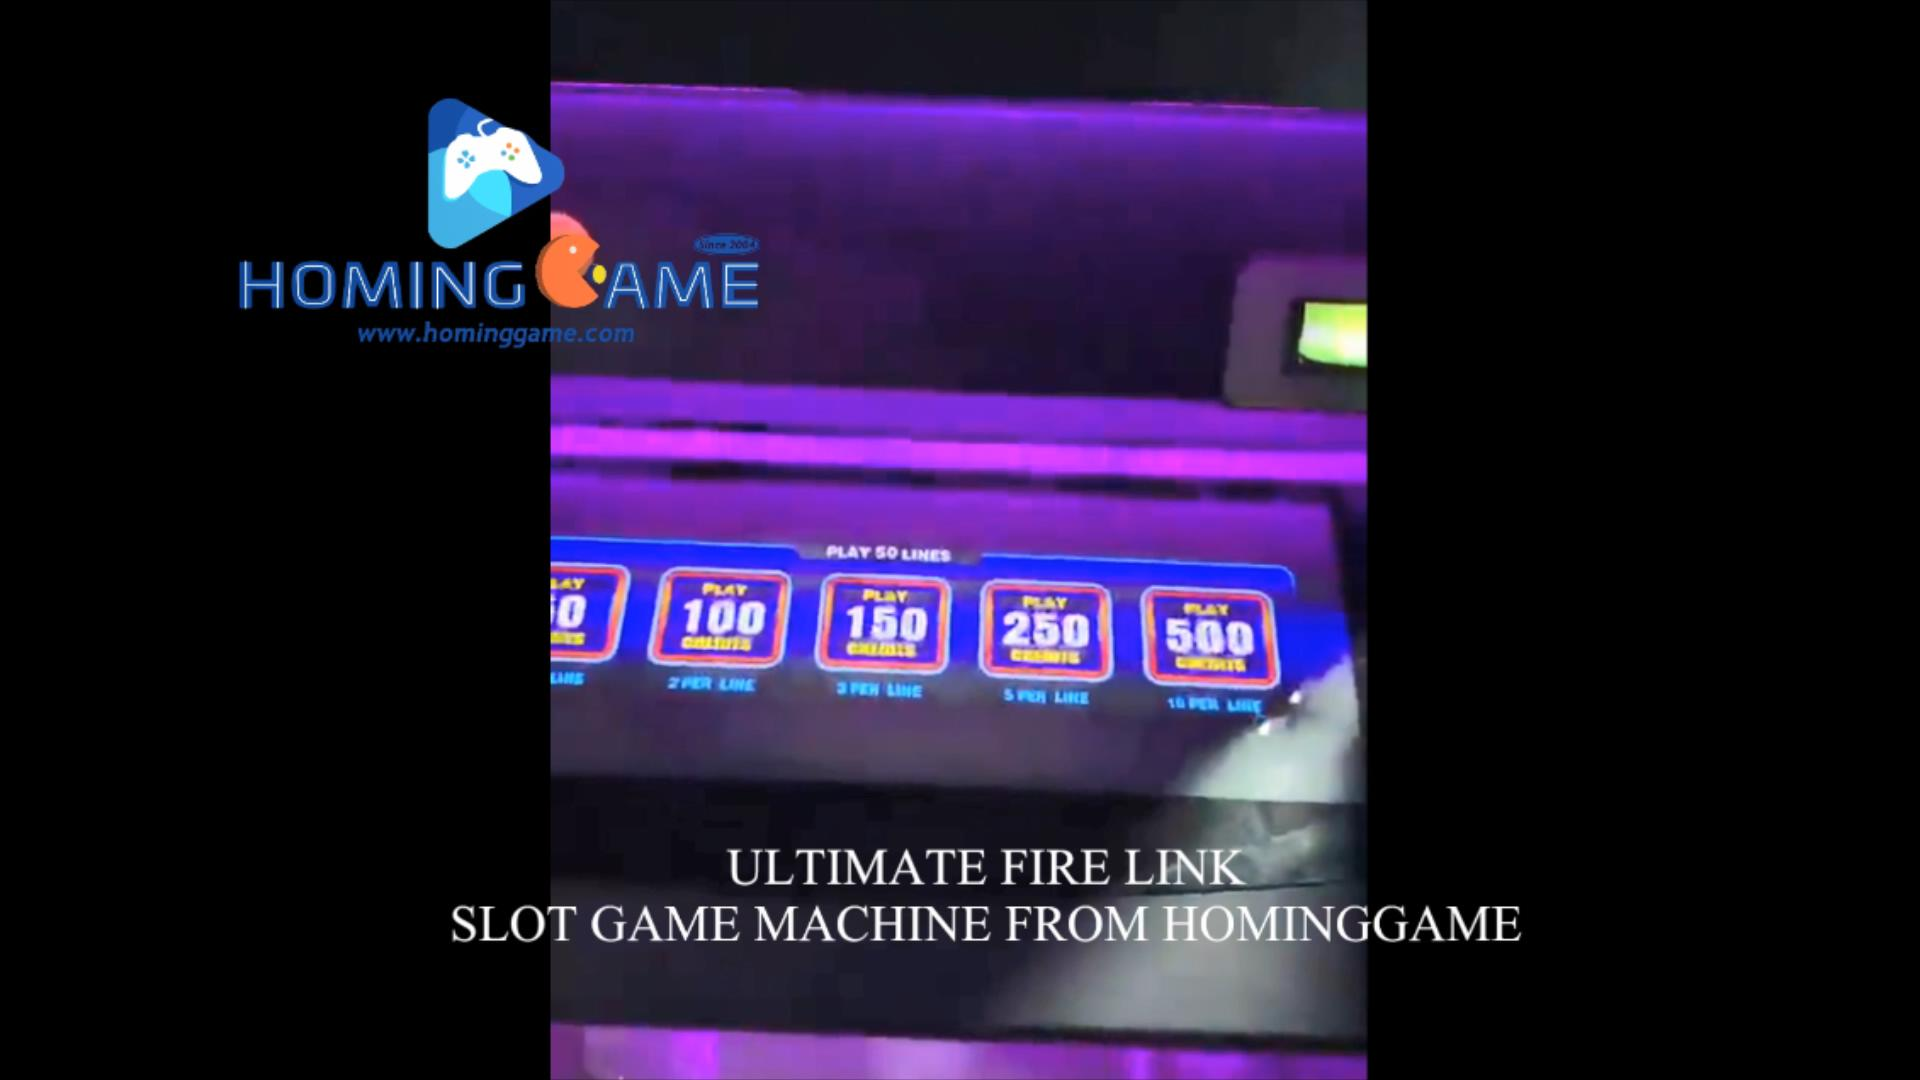 2020 2021 USA TOP HOT Slot Game Ultimate Fire Link Slot Game Machine Produced By HomingGame(Order Call Whatsapp:+8618688409495),ultimate fire link,ultimate fire link slot game machine,ultimate fire link slot game,fire link slot game machine,fire link,ultimate fire link slot gaming machine,ultimate fire link slot table gaming machine,slot game,slot table game,slot gaming machine,game machine,arcade game machine,coin operated game machine,arcade game machine for sale,amsuement machine,entertainment game machine,family entertainment game machine,hominggame,www.gametube.hk,indoor game machine,casino,gambling machine,electrical game machine,slot,slot game machine for sale,slot table for sale,simulator game machine,video game machine,video game,video game machine for sale,hominggame fire link slot game,slot gaming